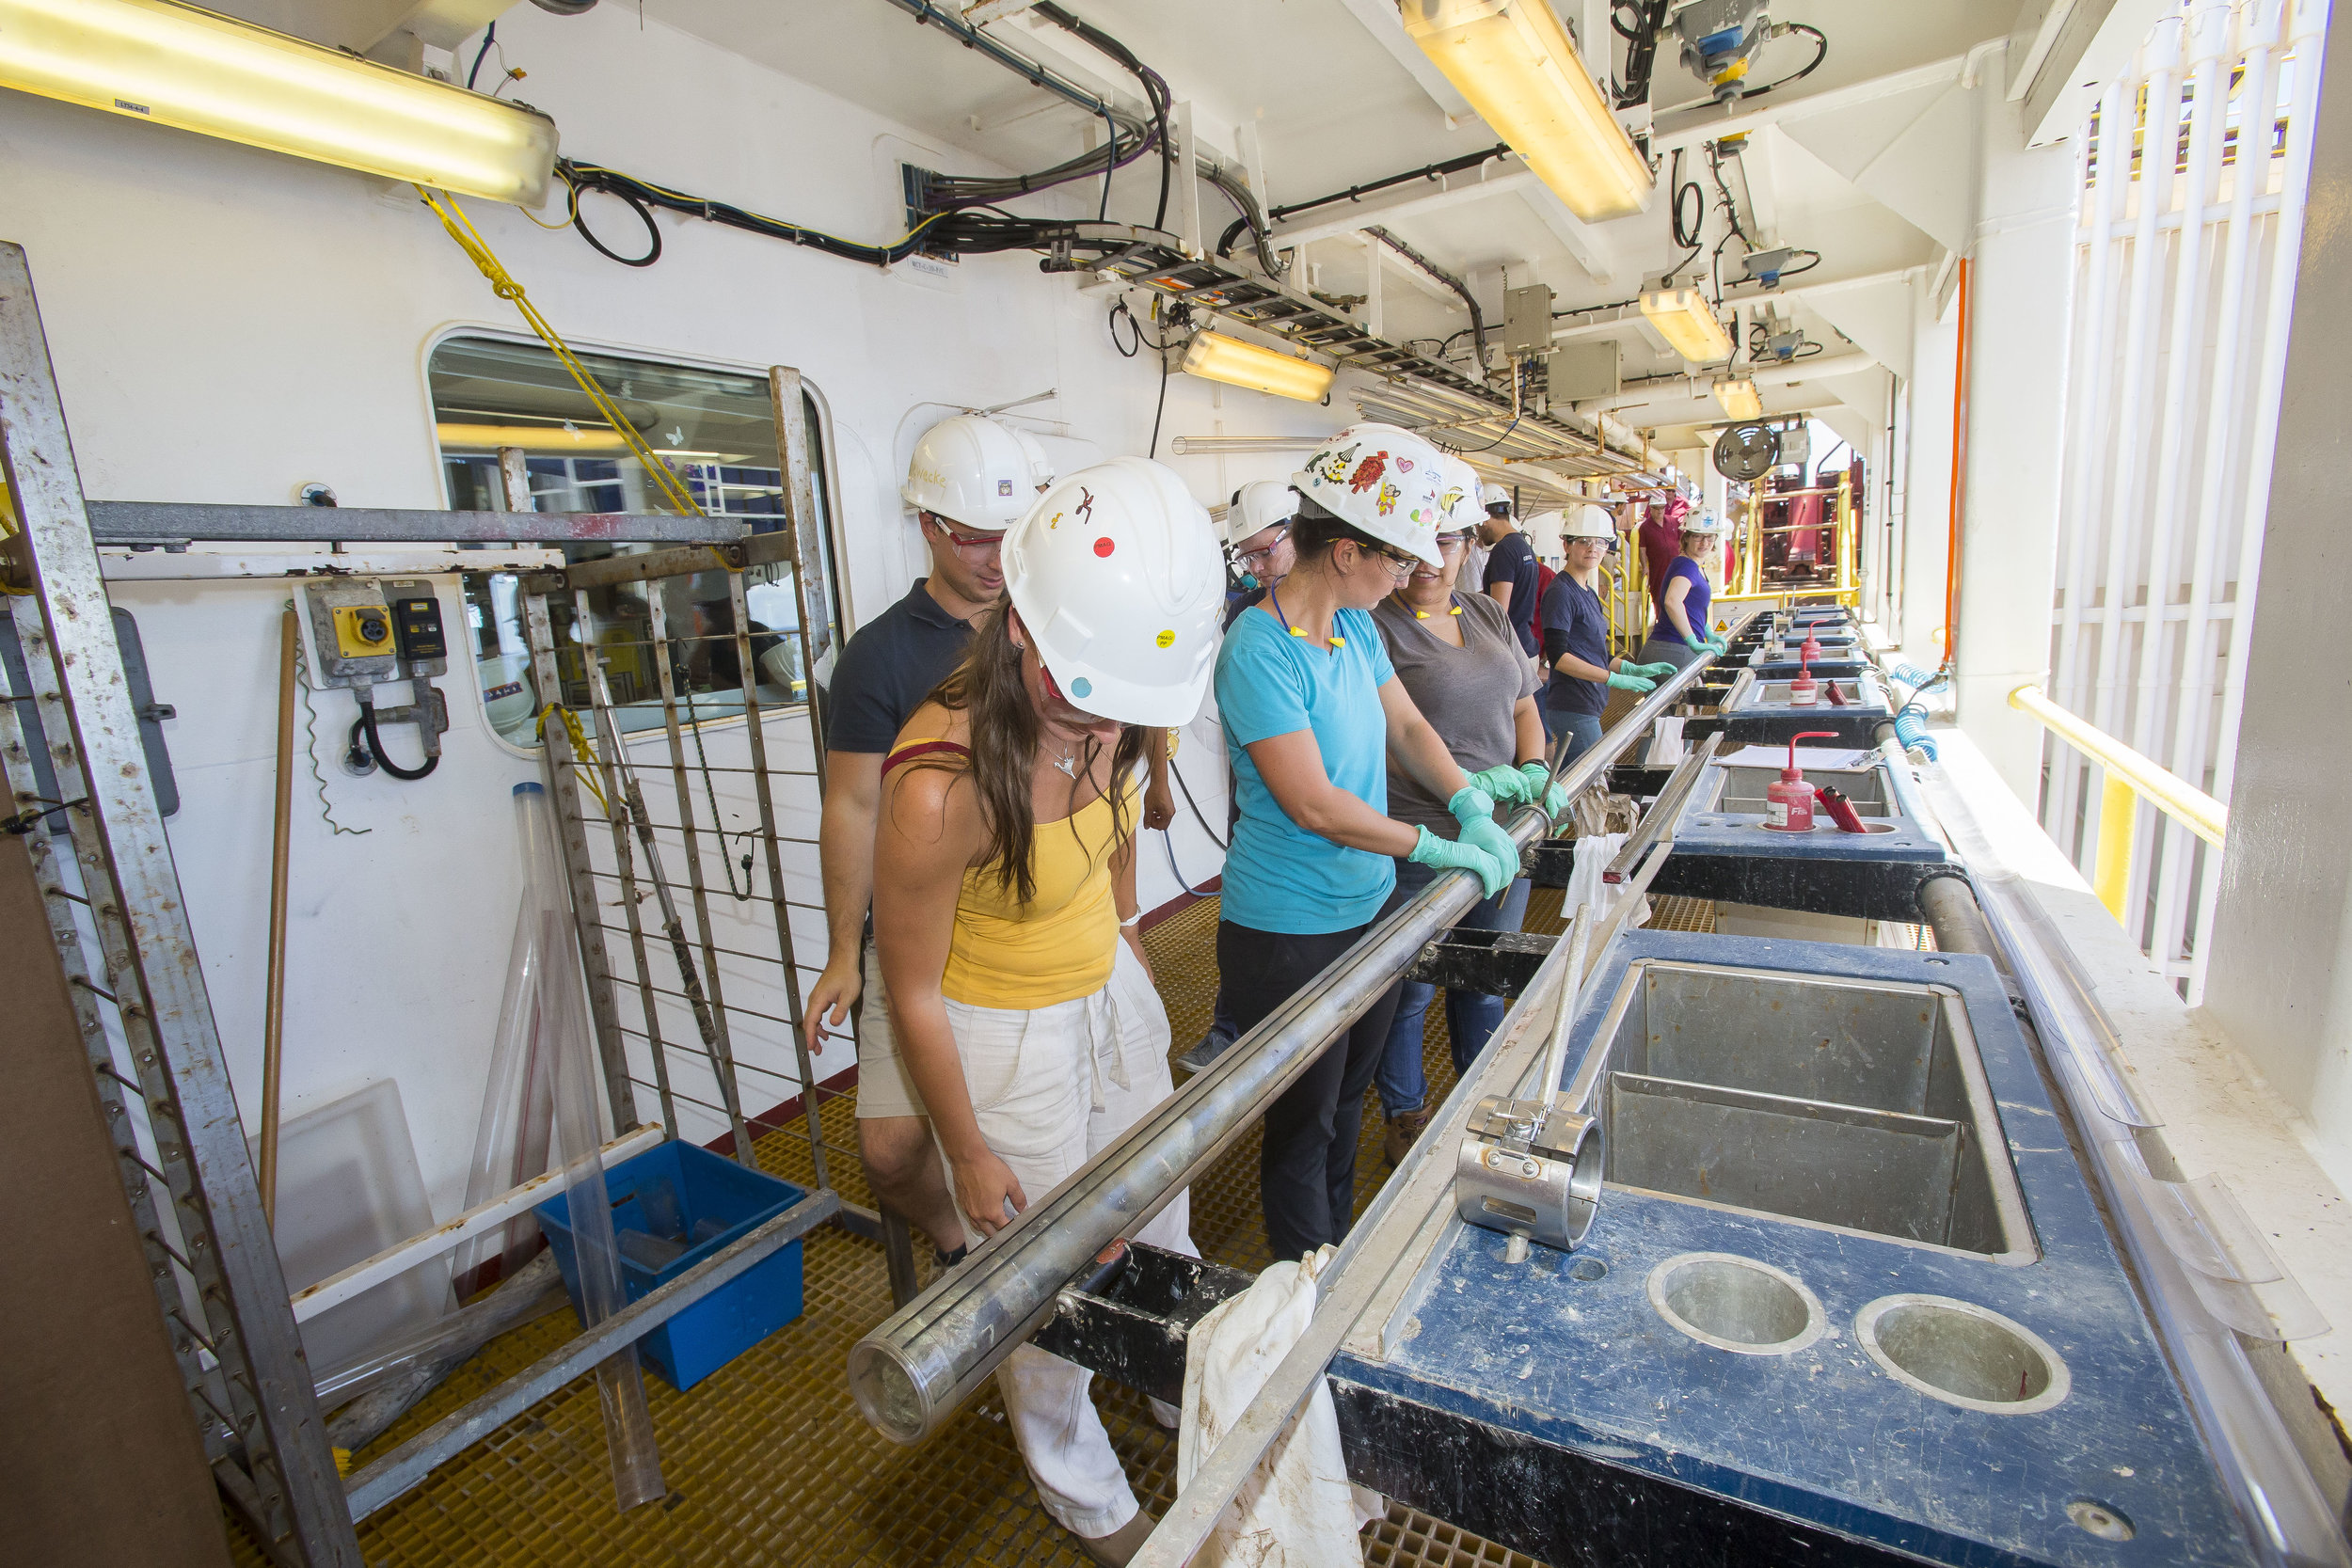 Core arriving at the catwalk for sample preparation and analysis. Photo credit: Tim Fulton, IODP.